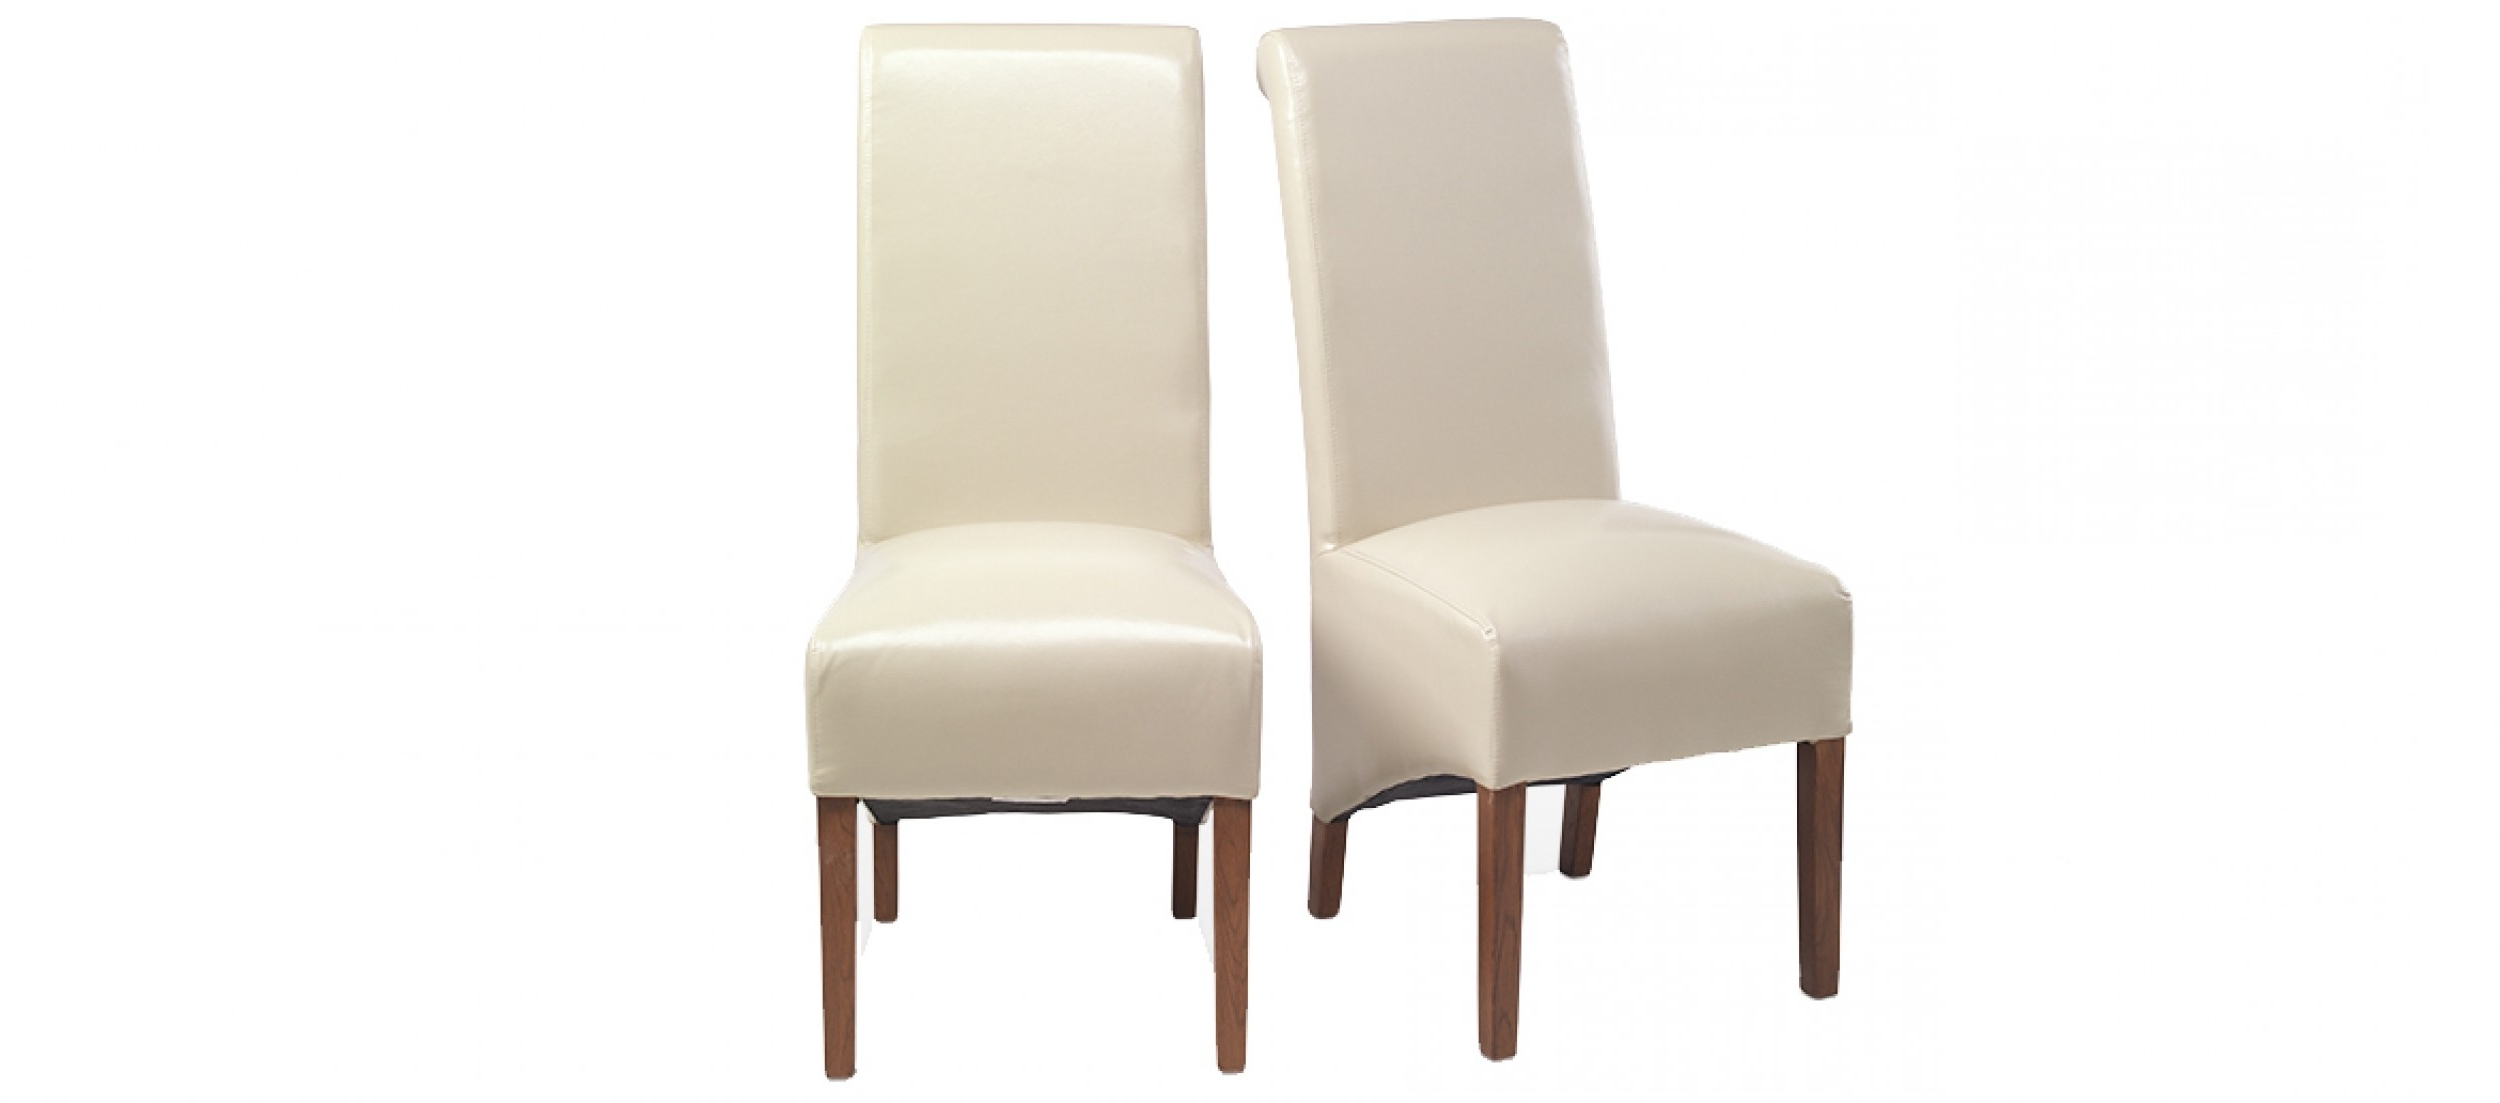 Most Recent Oak Leather Dining Chairs Within Cube Bonded Leather Dining Chairs Beige – Pair (View 10 of 25)